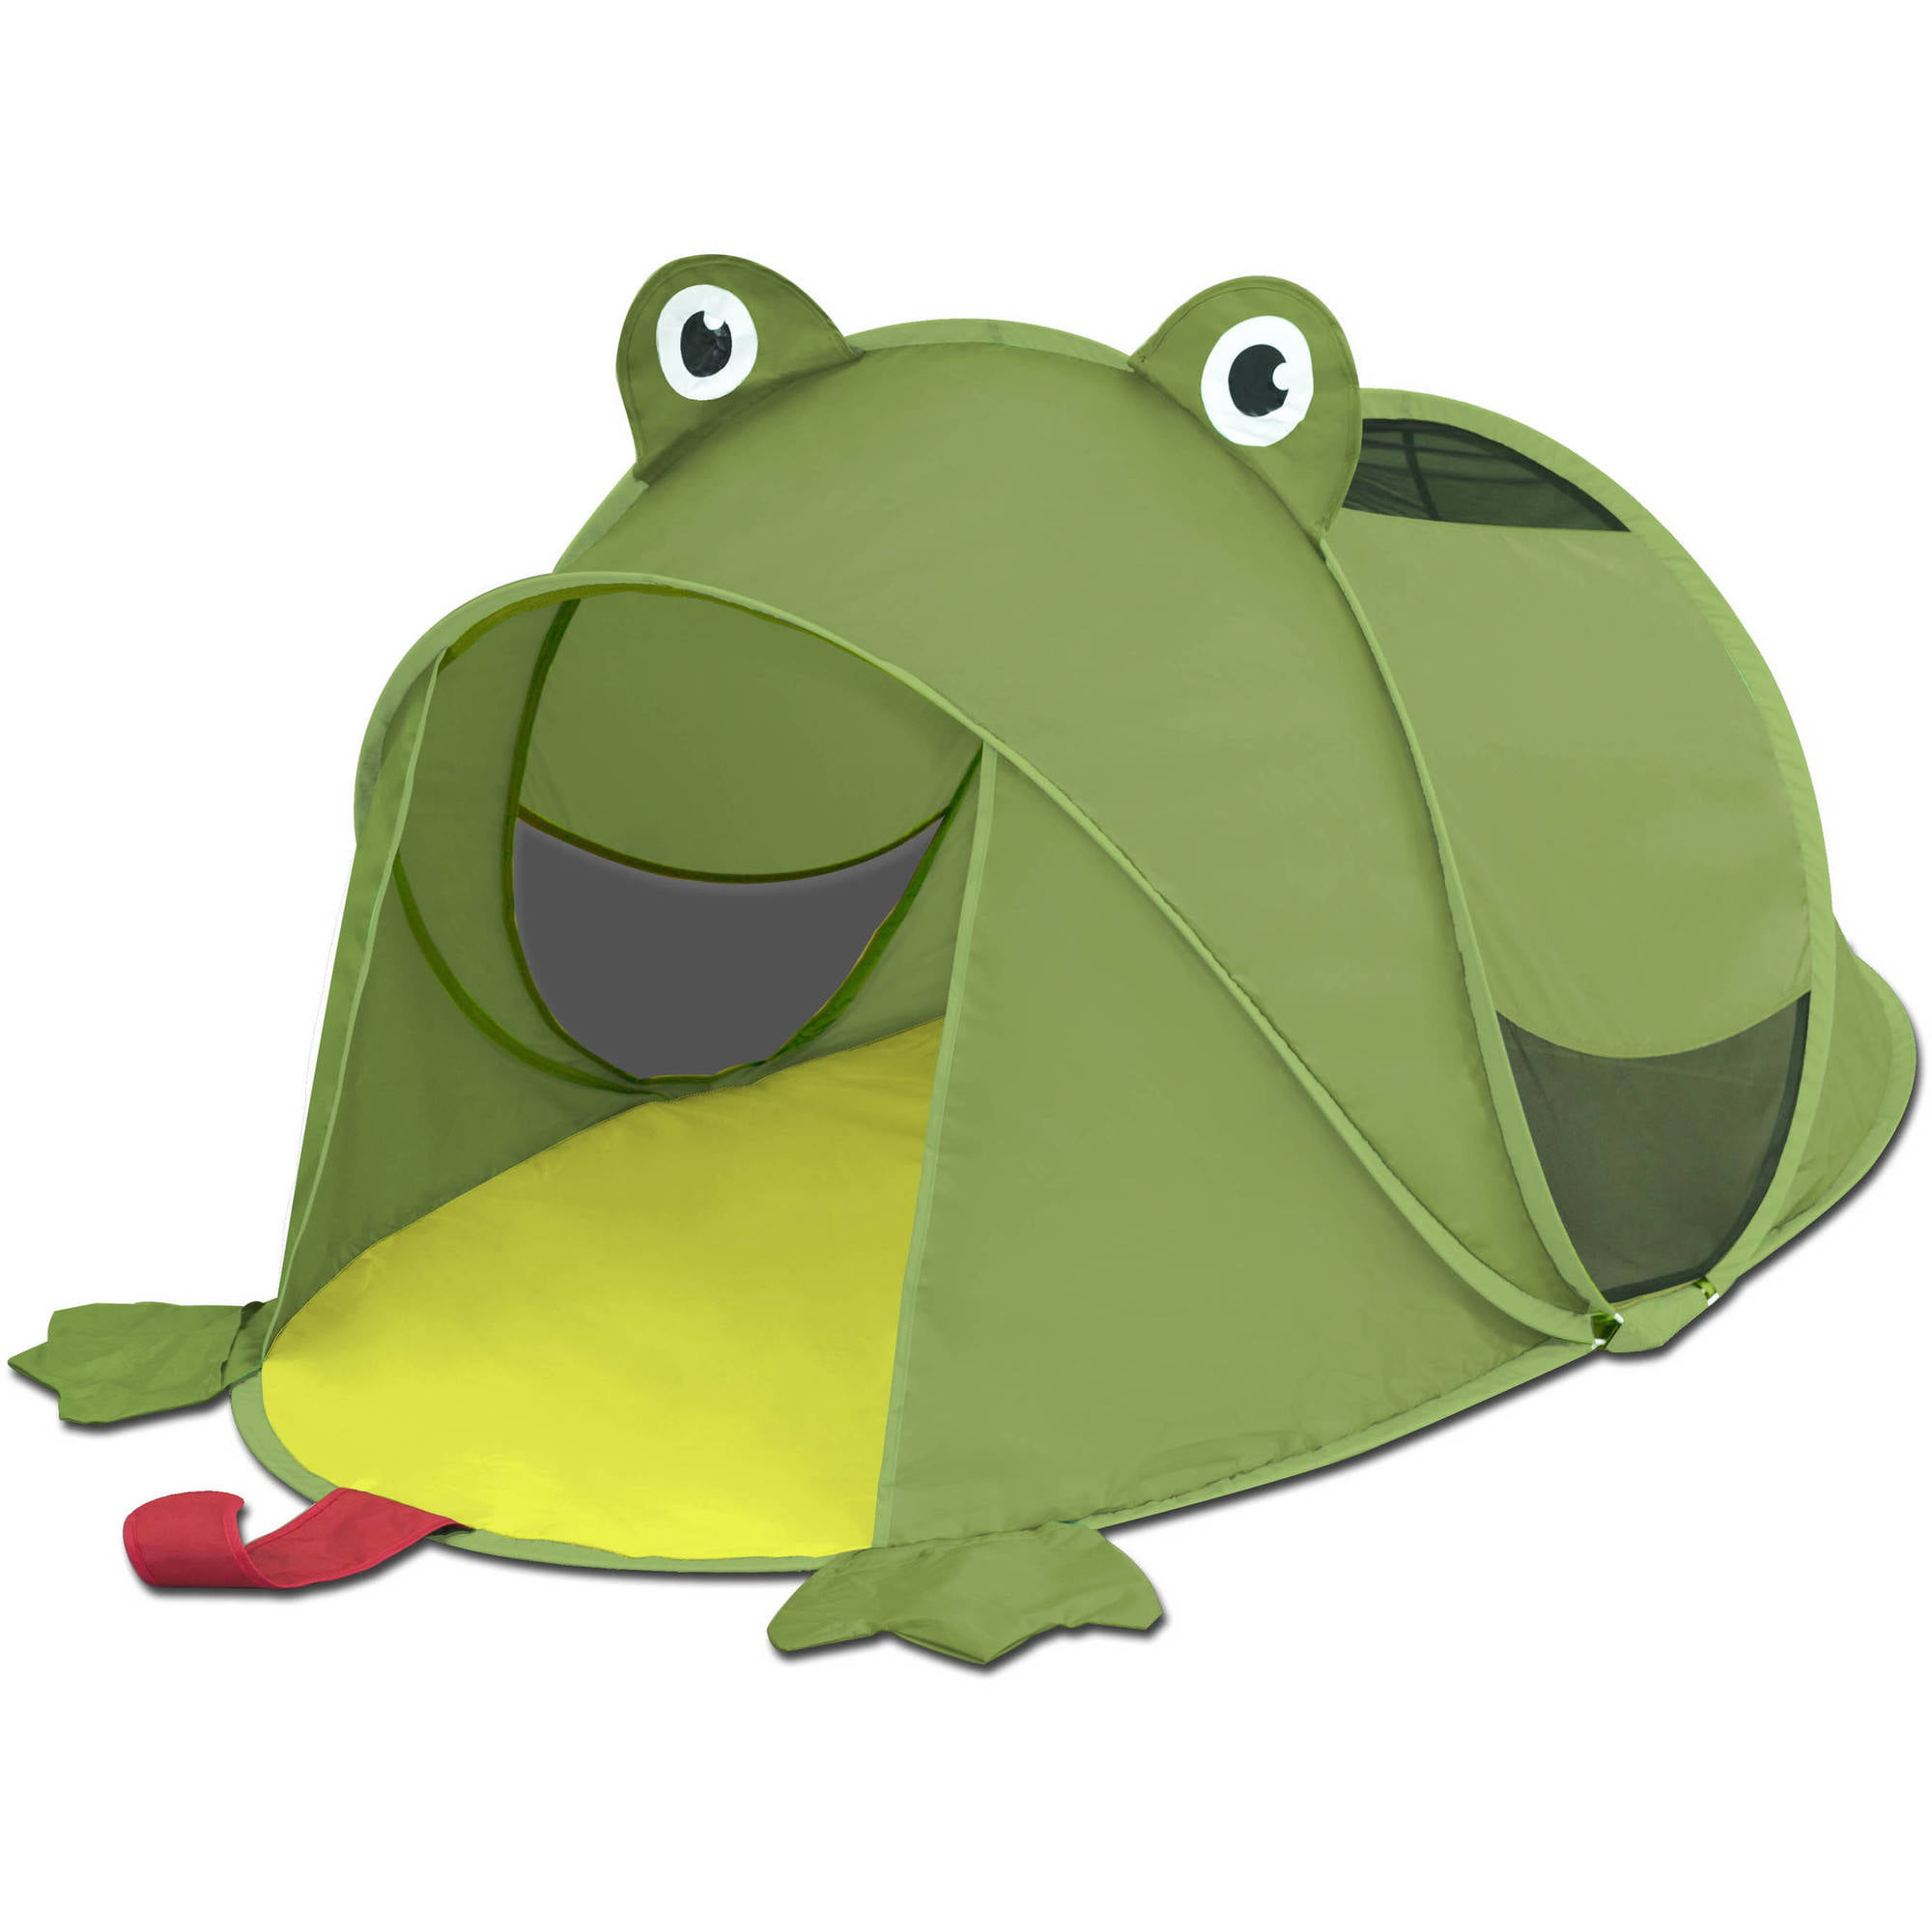 sc 1 st  Walmart & Kids Pop-Up Tent Frog - Walmart.com